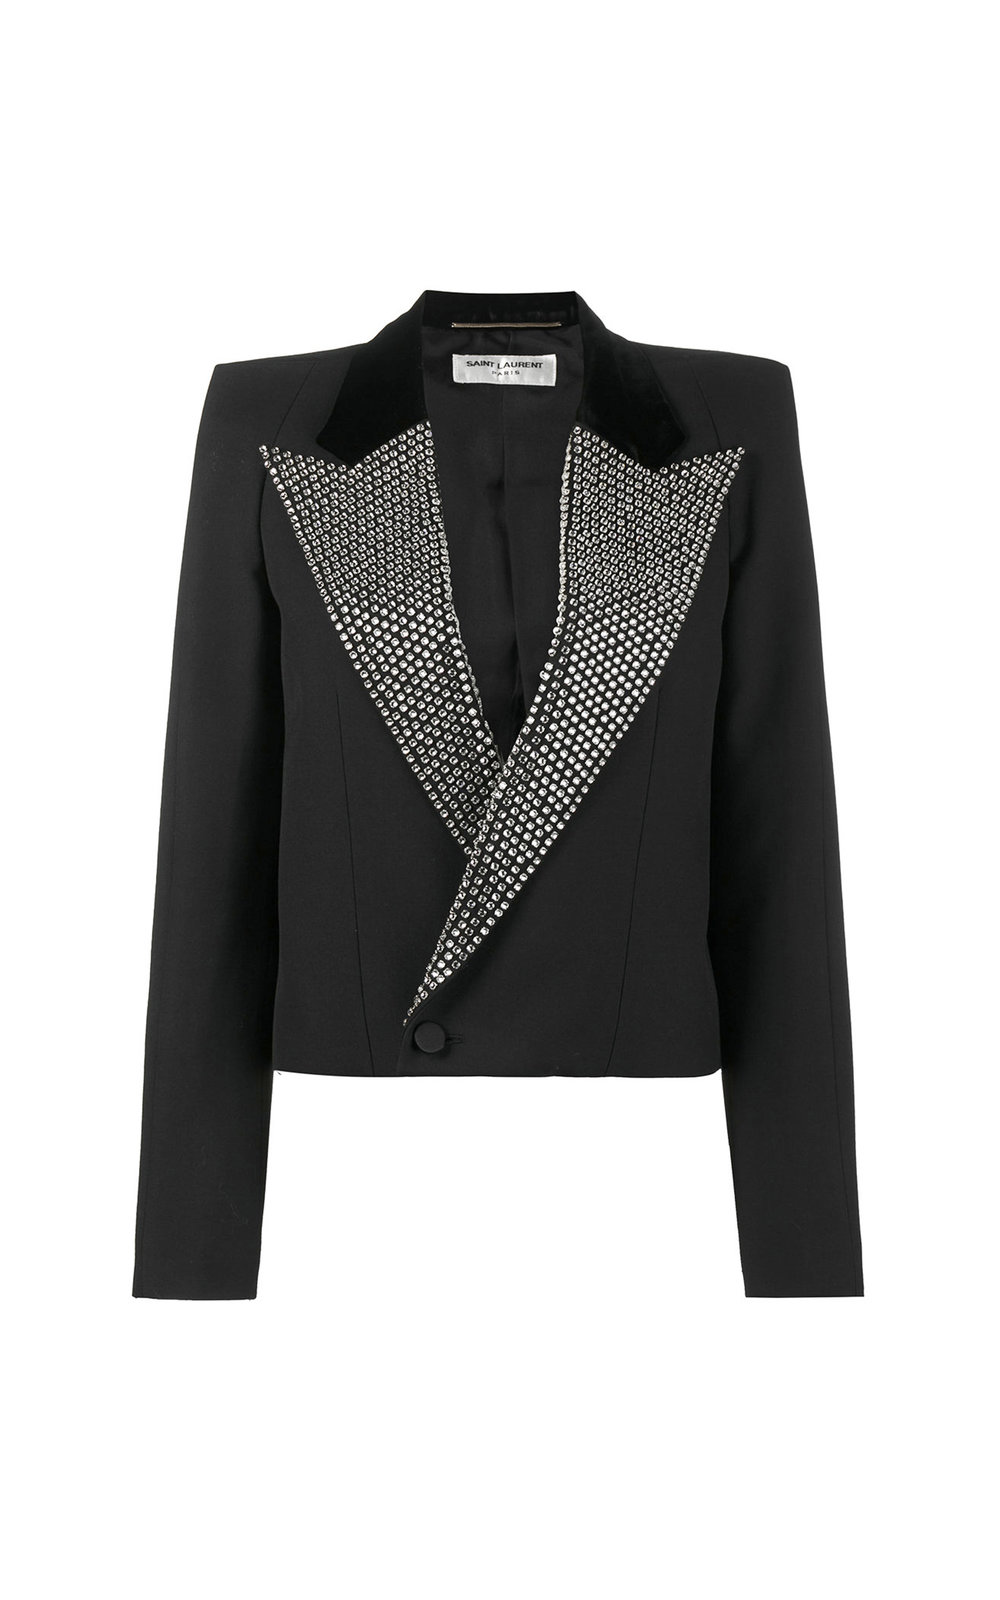 Iconic Cropped Sequin Jacket